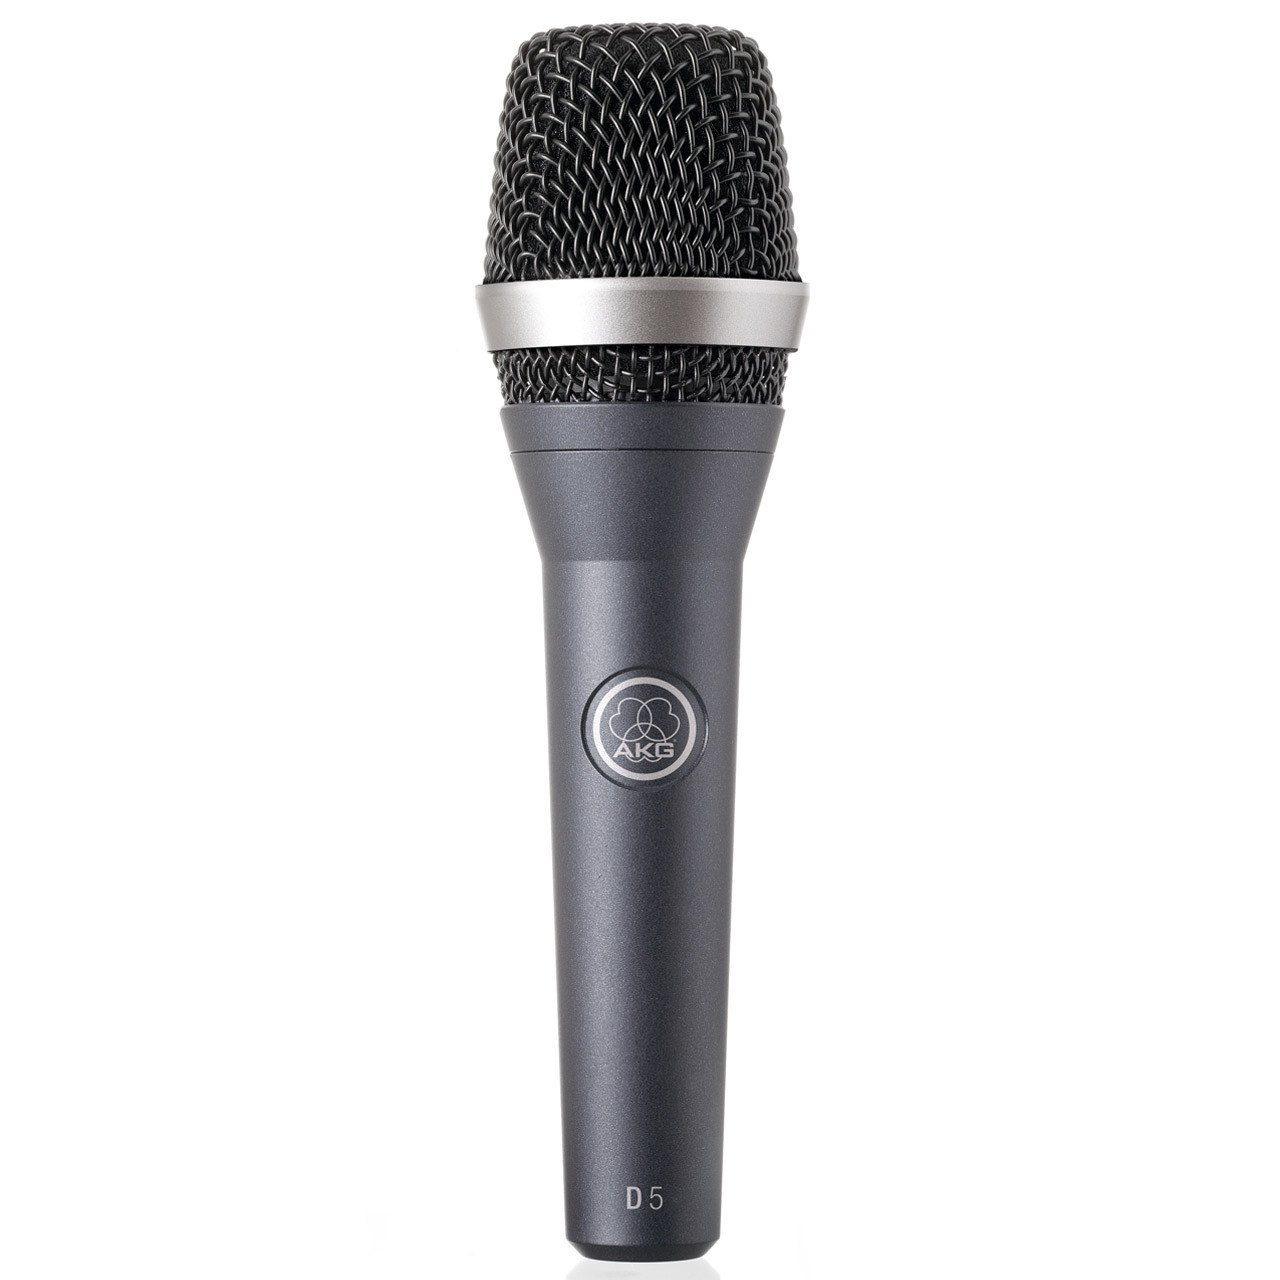 AKG D5 Handheld Dynamic Vocal Microphone